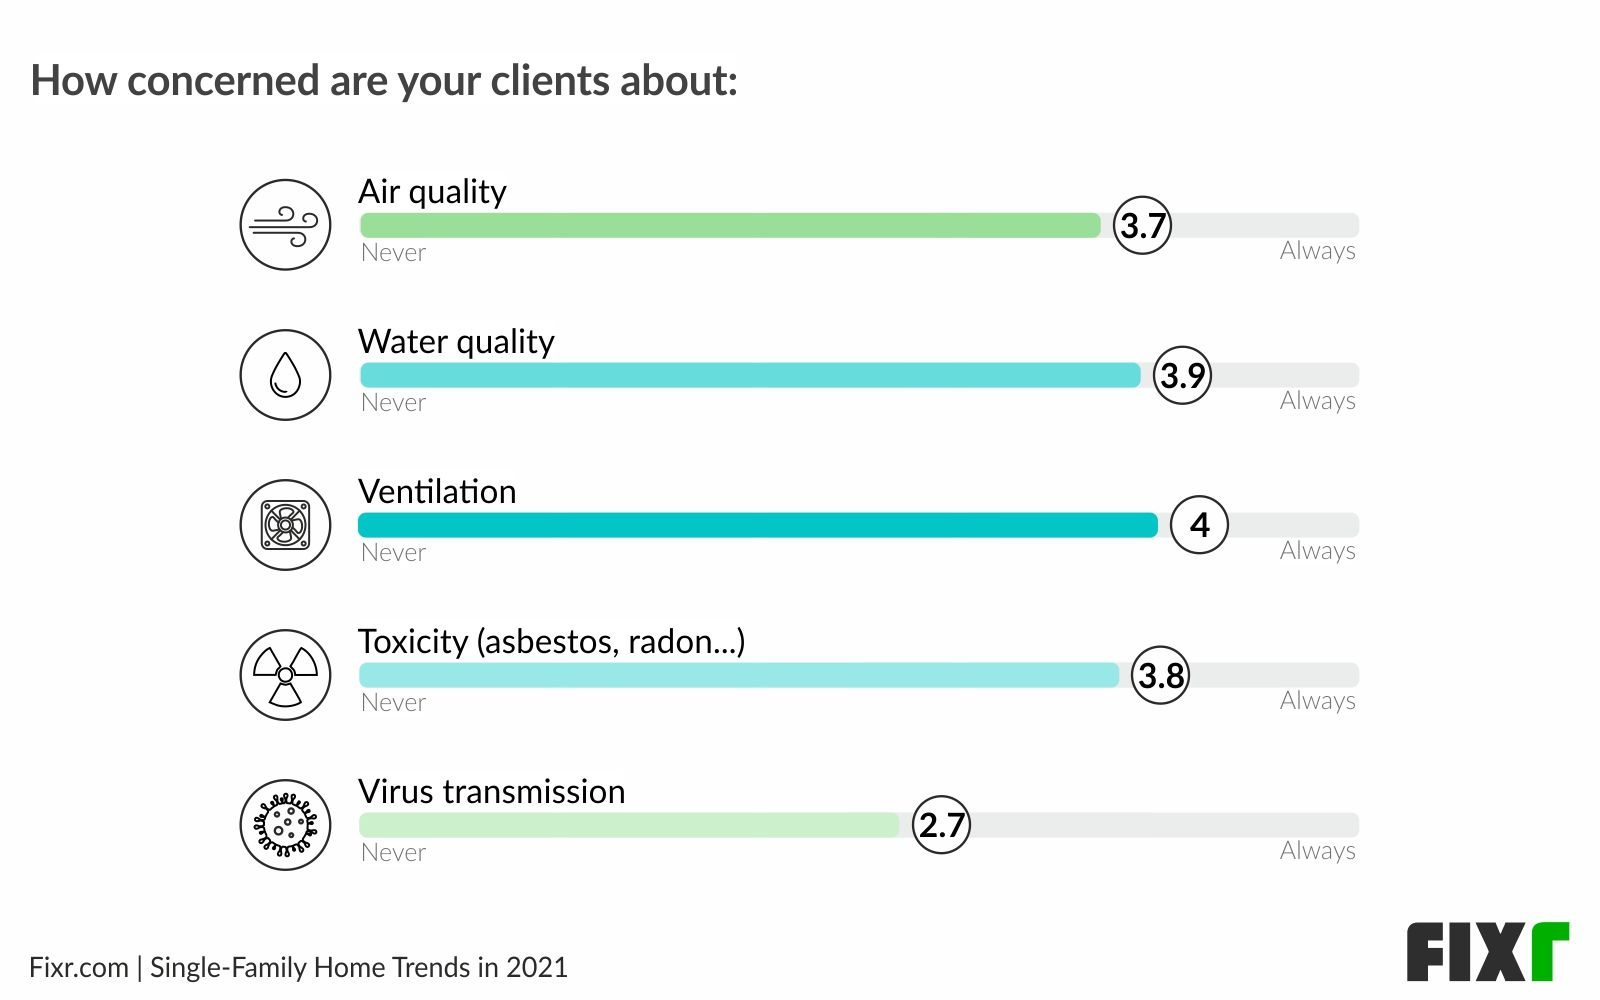 Healthy homes 2021 - Ventilation and water quality are the biggest concerns